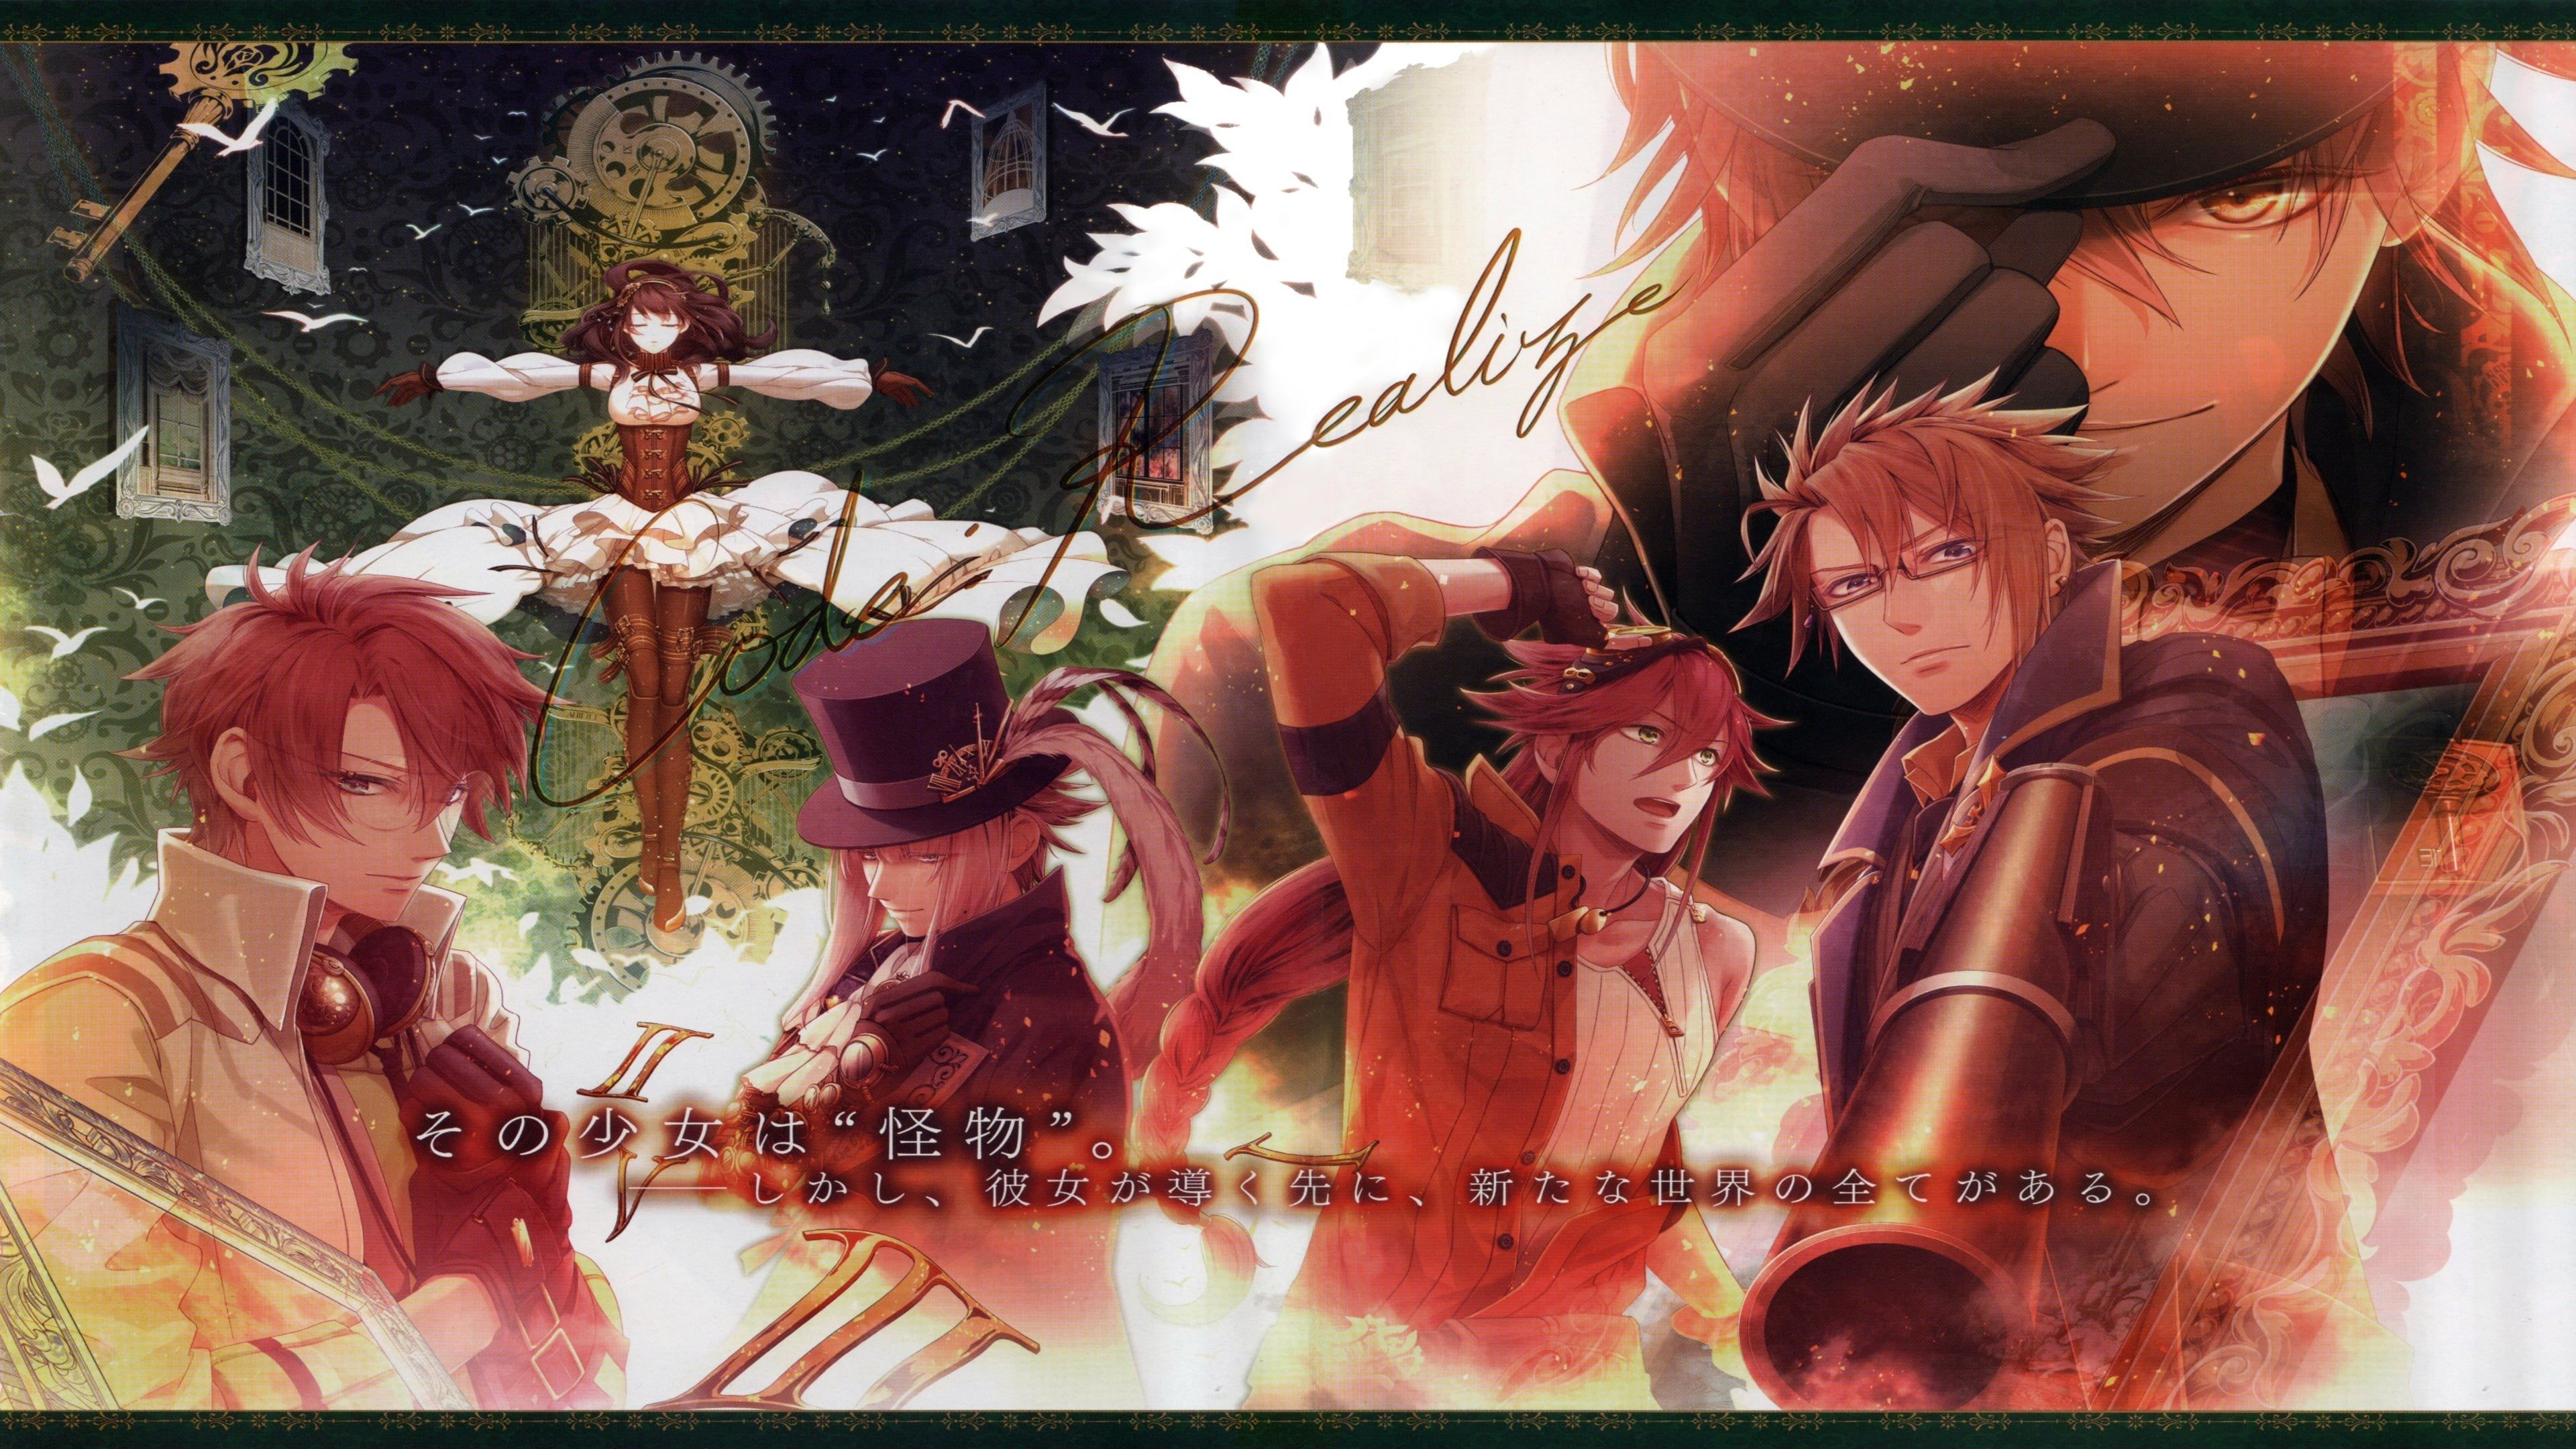 CodeRealize Sousei no Himegimi Batch Subtitle Indonesia